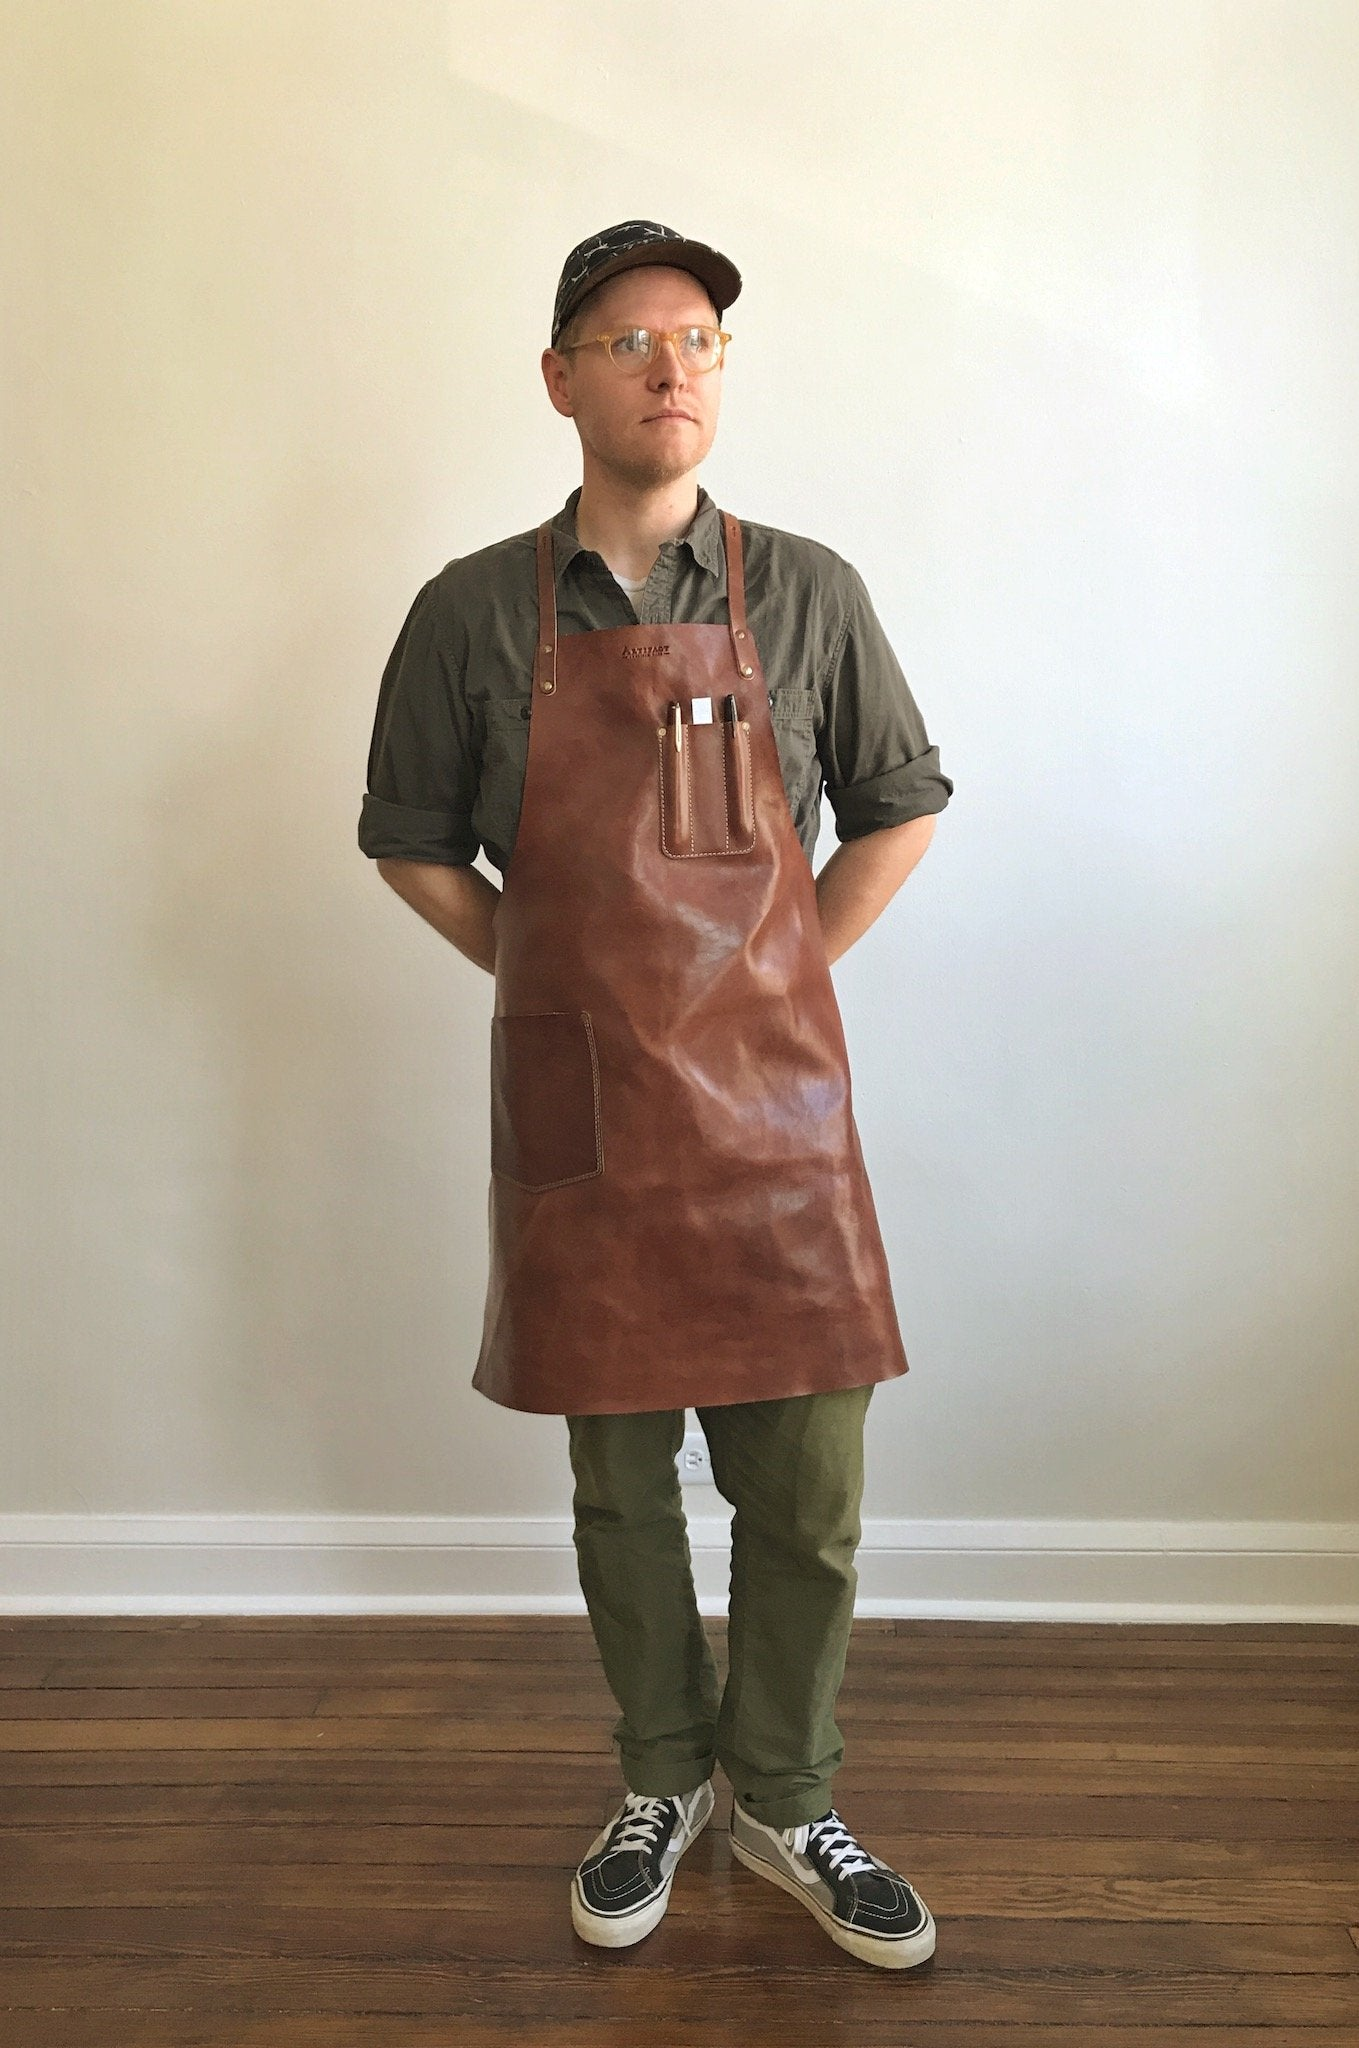 ARTIFACT Harness Leather Y-Strap Apron